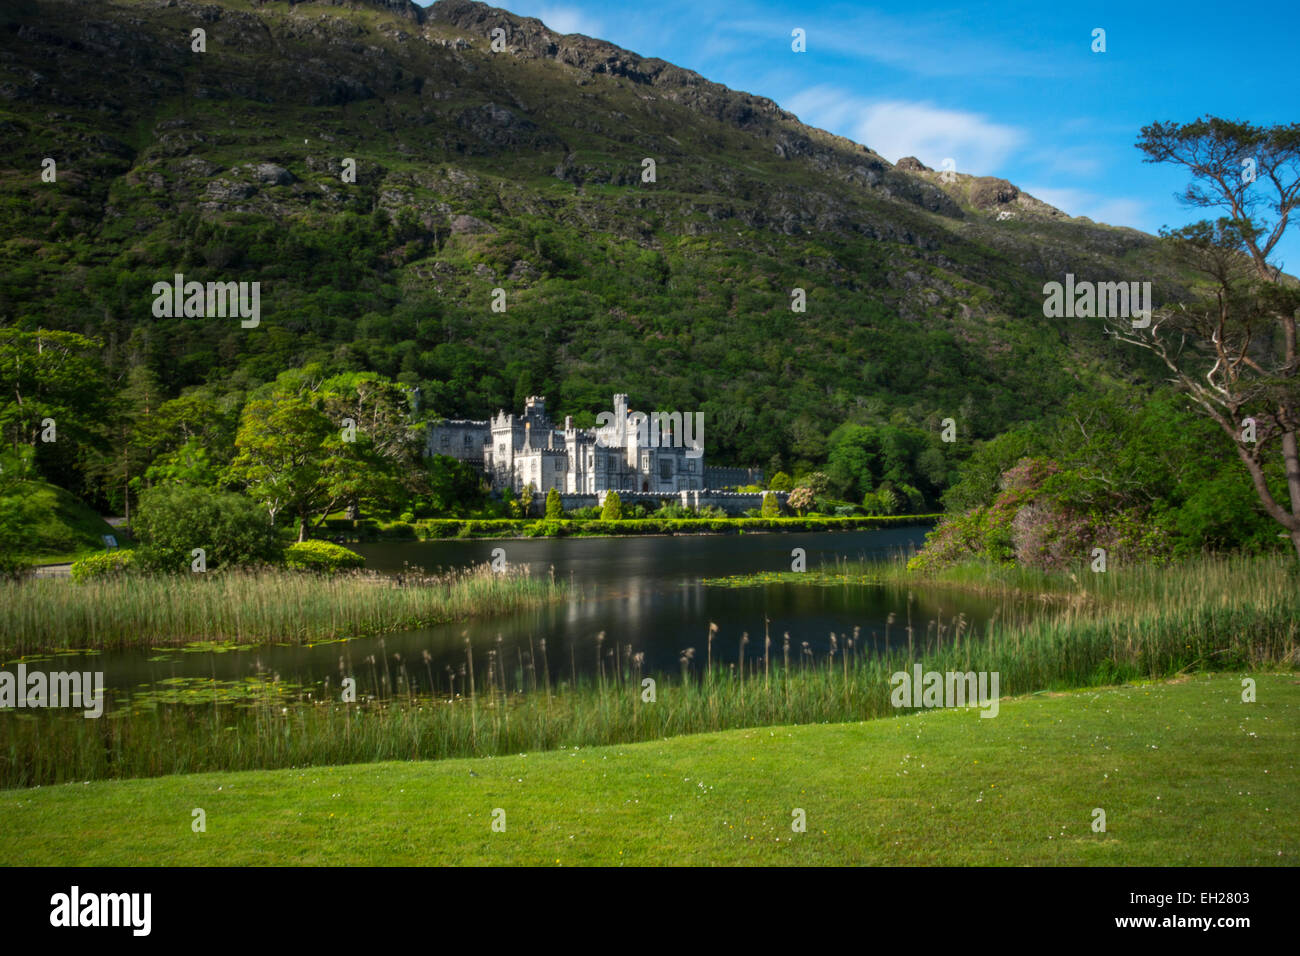 Kylemore Abbey from behind the lake, Connemara, Galway, Republic of Ireland - Stock Image